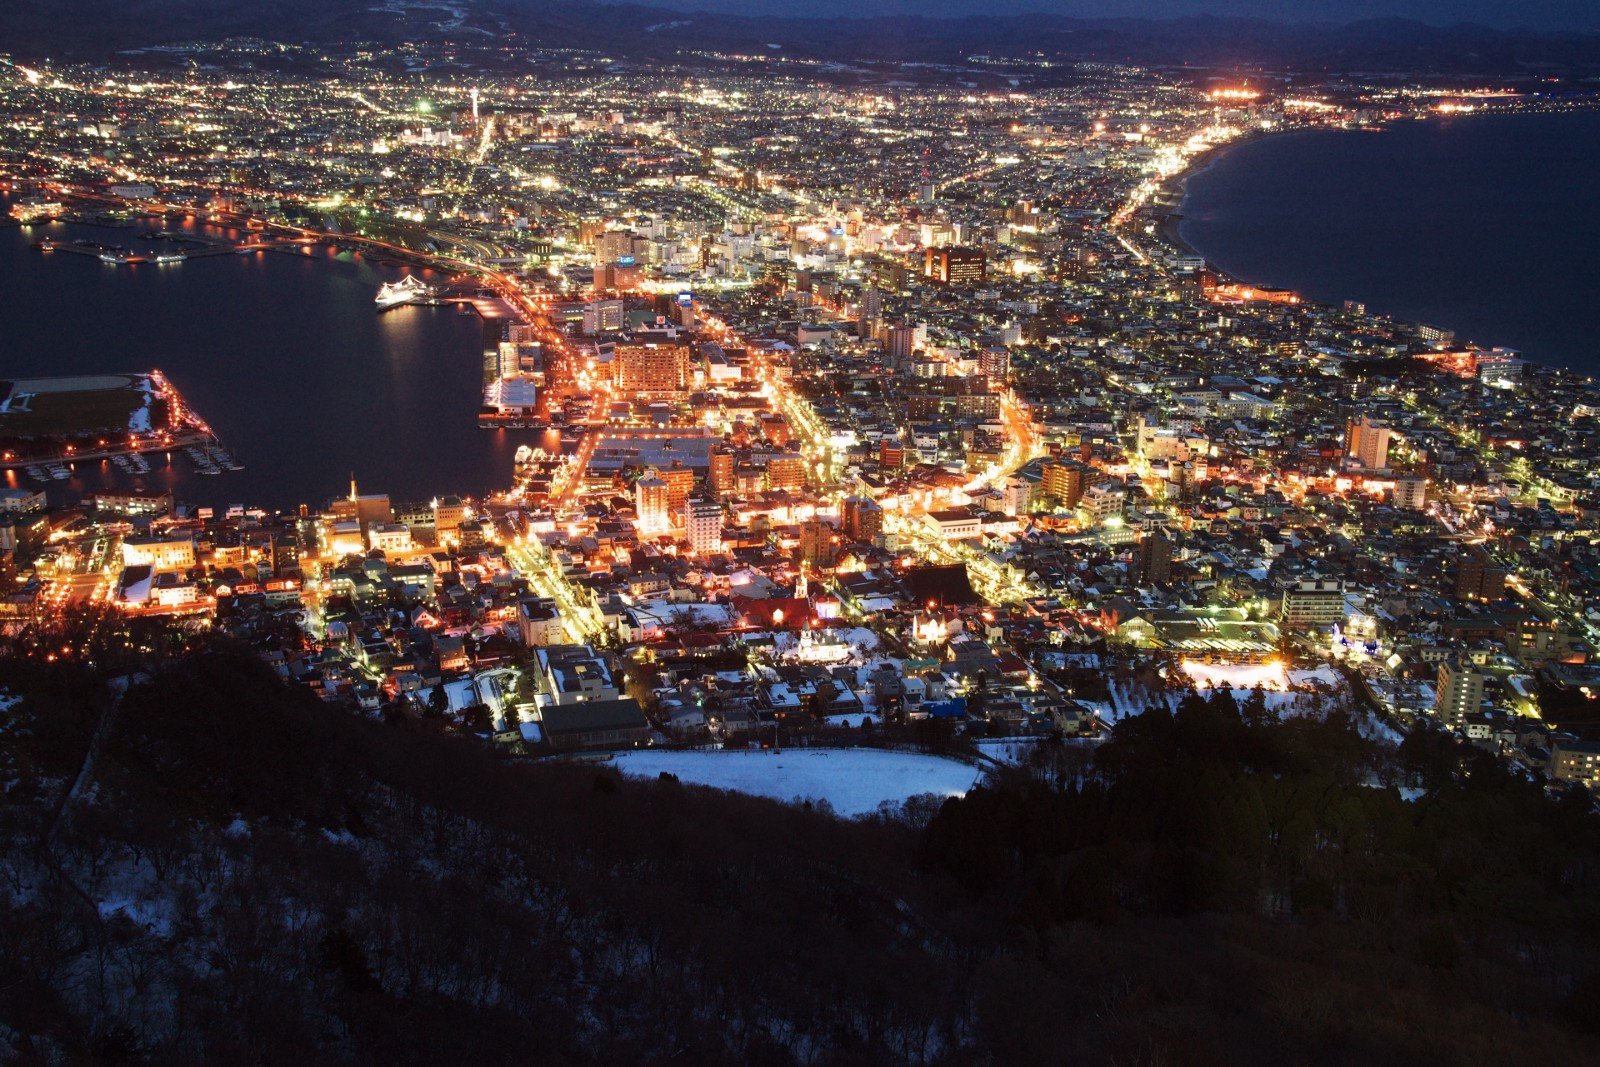 The astonishing night view of the city from Mt Hakodate